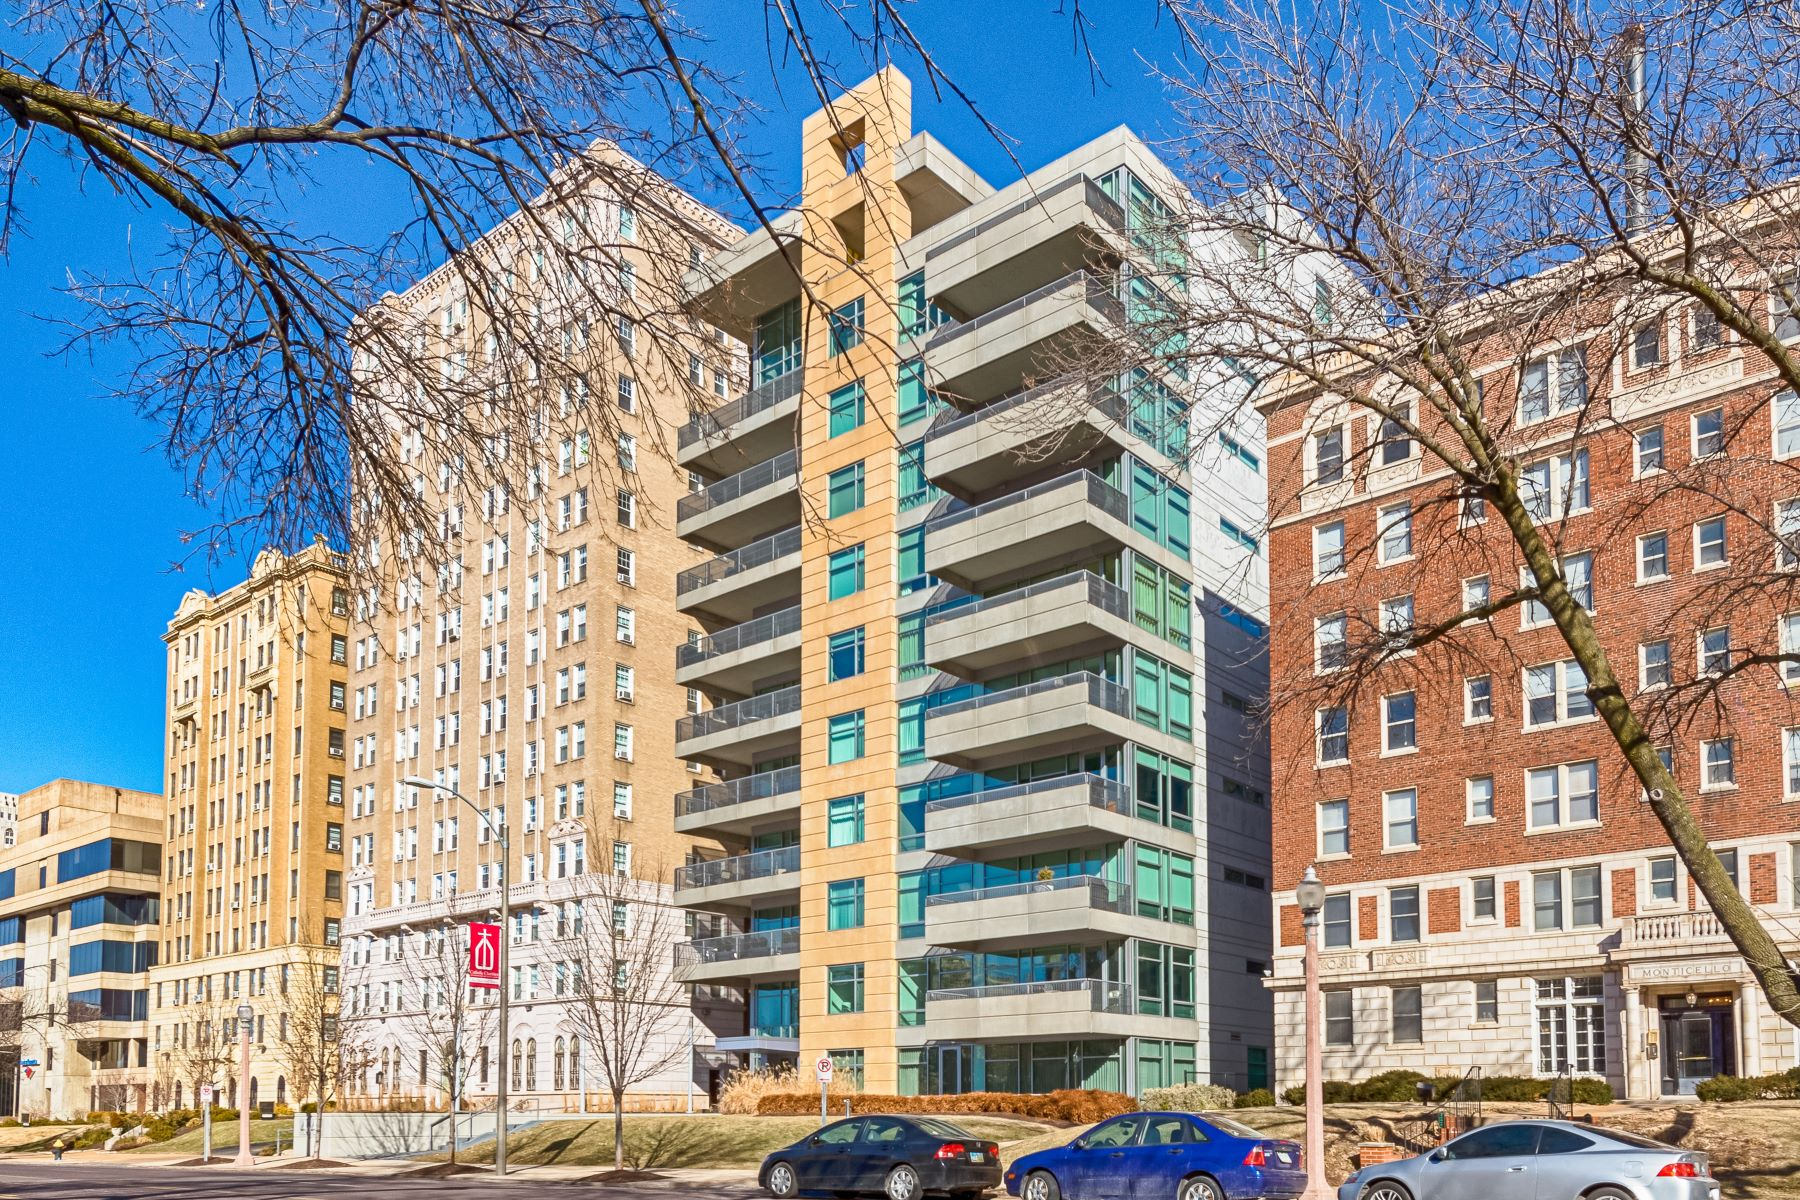 Condominiums for Sale at Central West End Condo 4545 Lindell Boulevard #11 St. Louis, Missouri 63108 United States